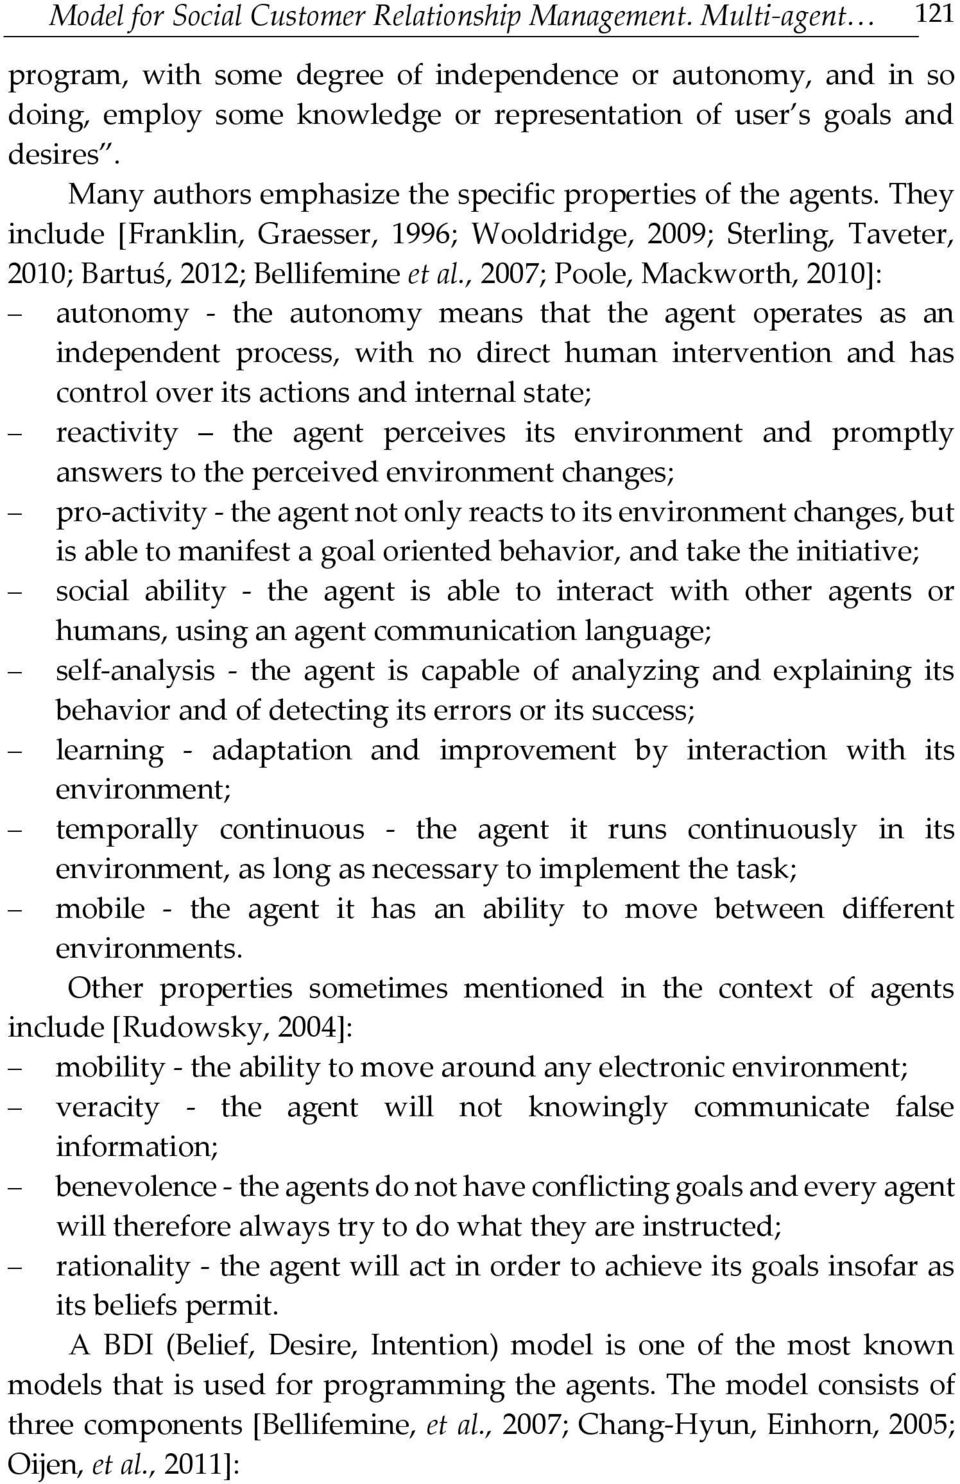 Many authors emphasize the specific properties of the agents. They include [Franklin, Graesser, 1996; Wooldridge, 2009; Sterling, Taveter, 2010; Bartuś, 2012; Bellifemine et al.